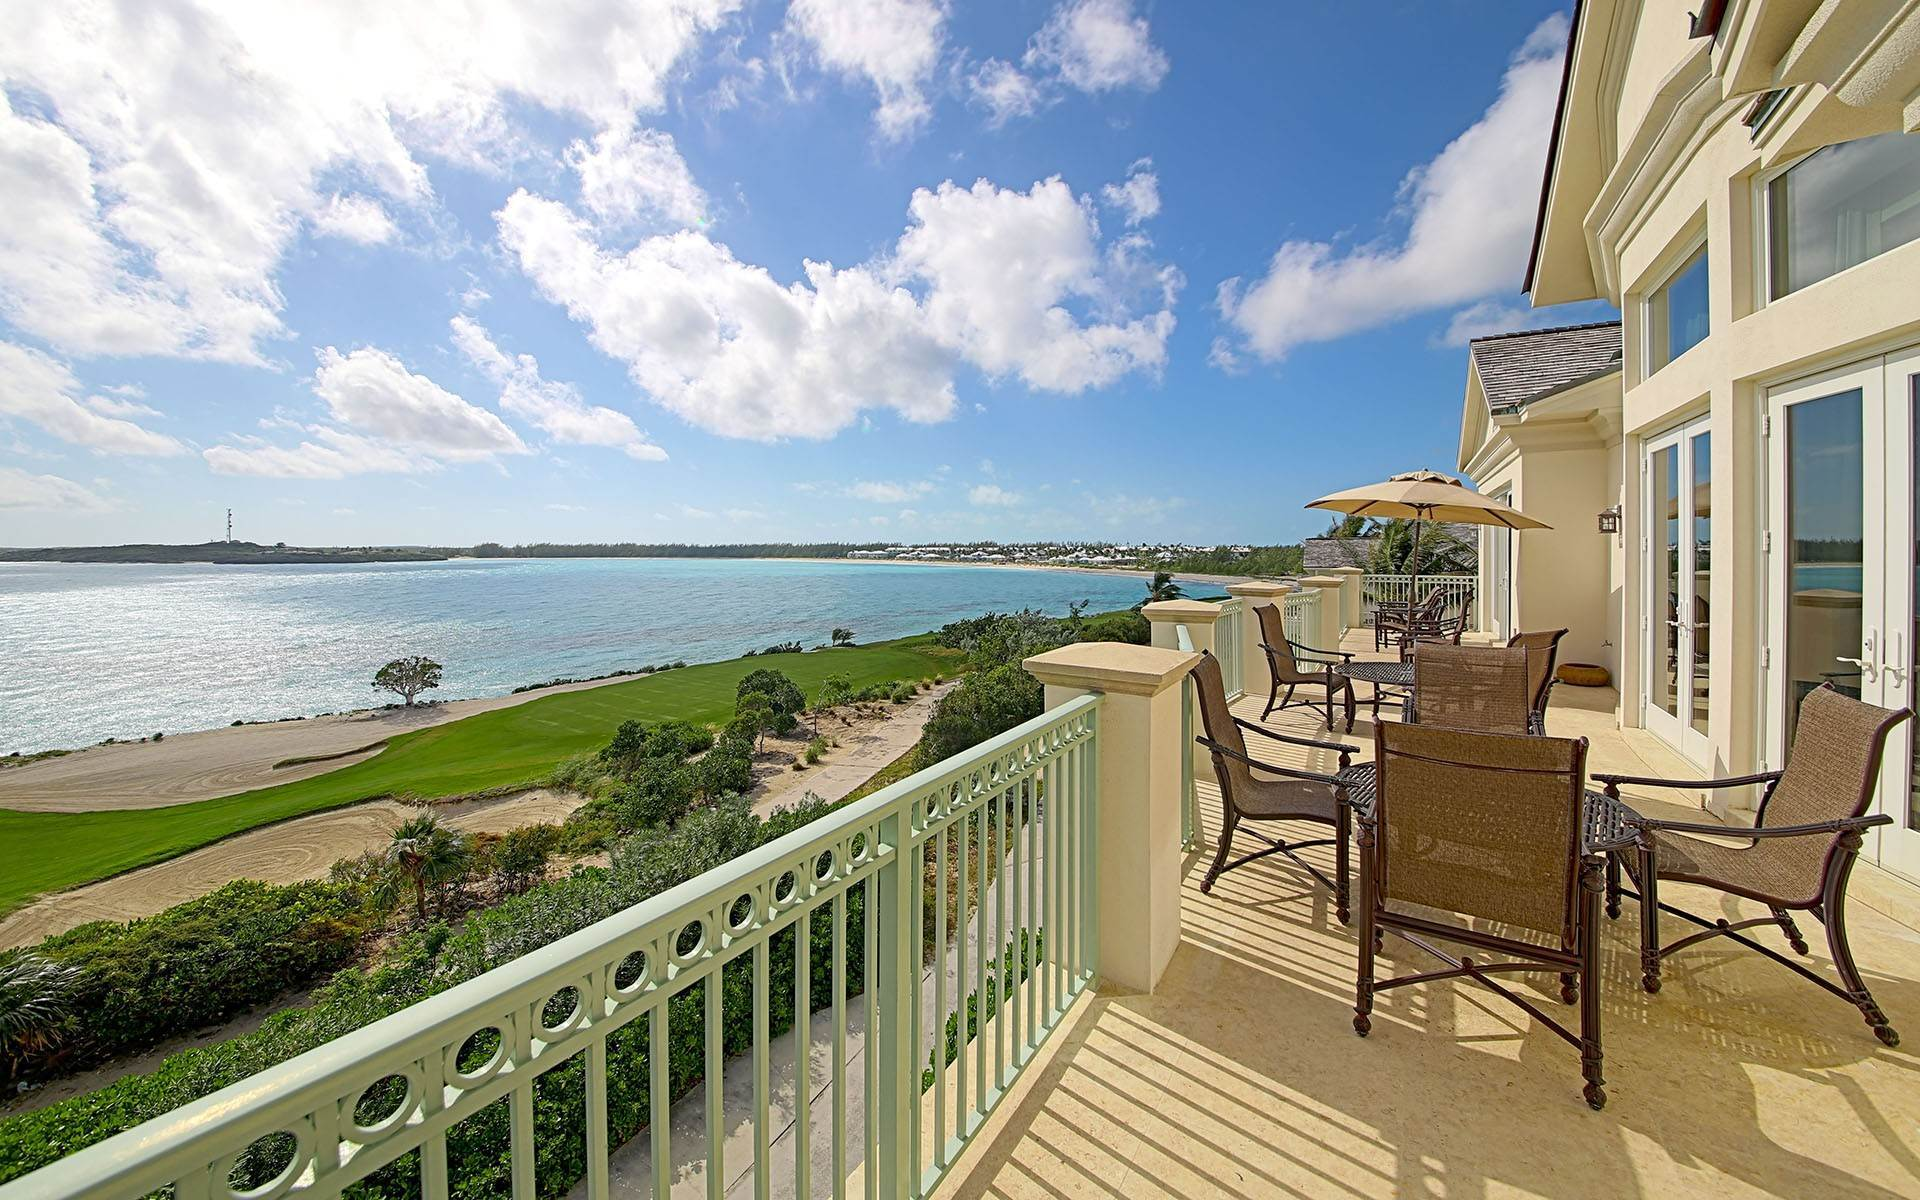 Co-op / Condo for Sale at Grand Isle Villas Resort Penthouse - MLS 29556 Emerald Bay, Exuma, Bahamas